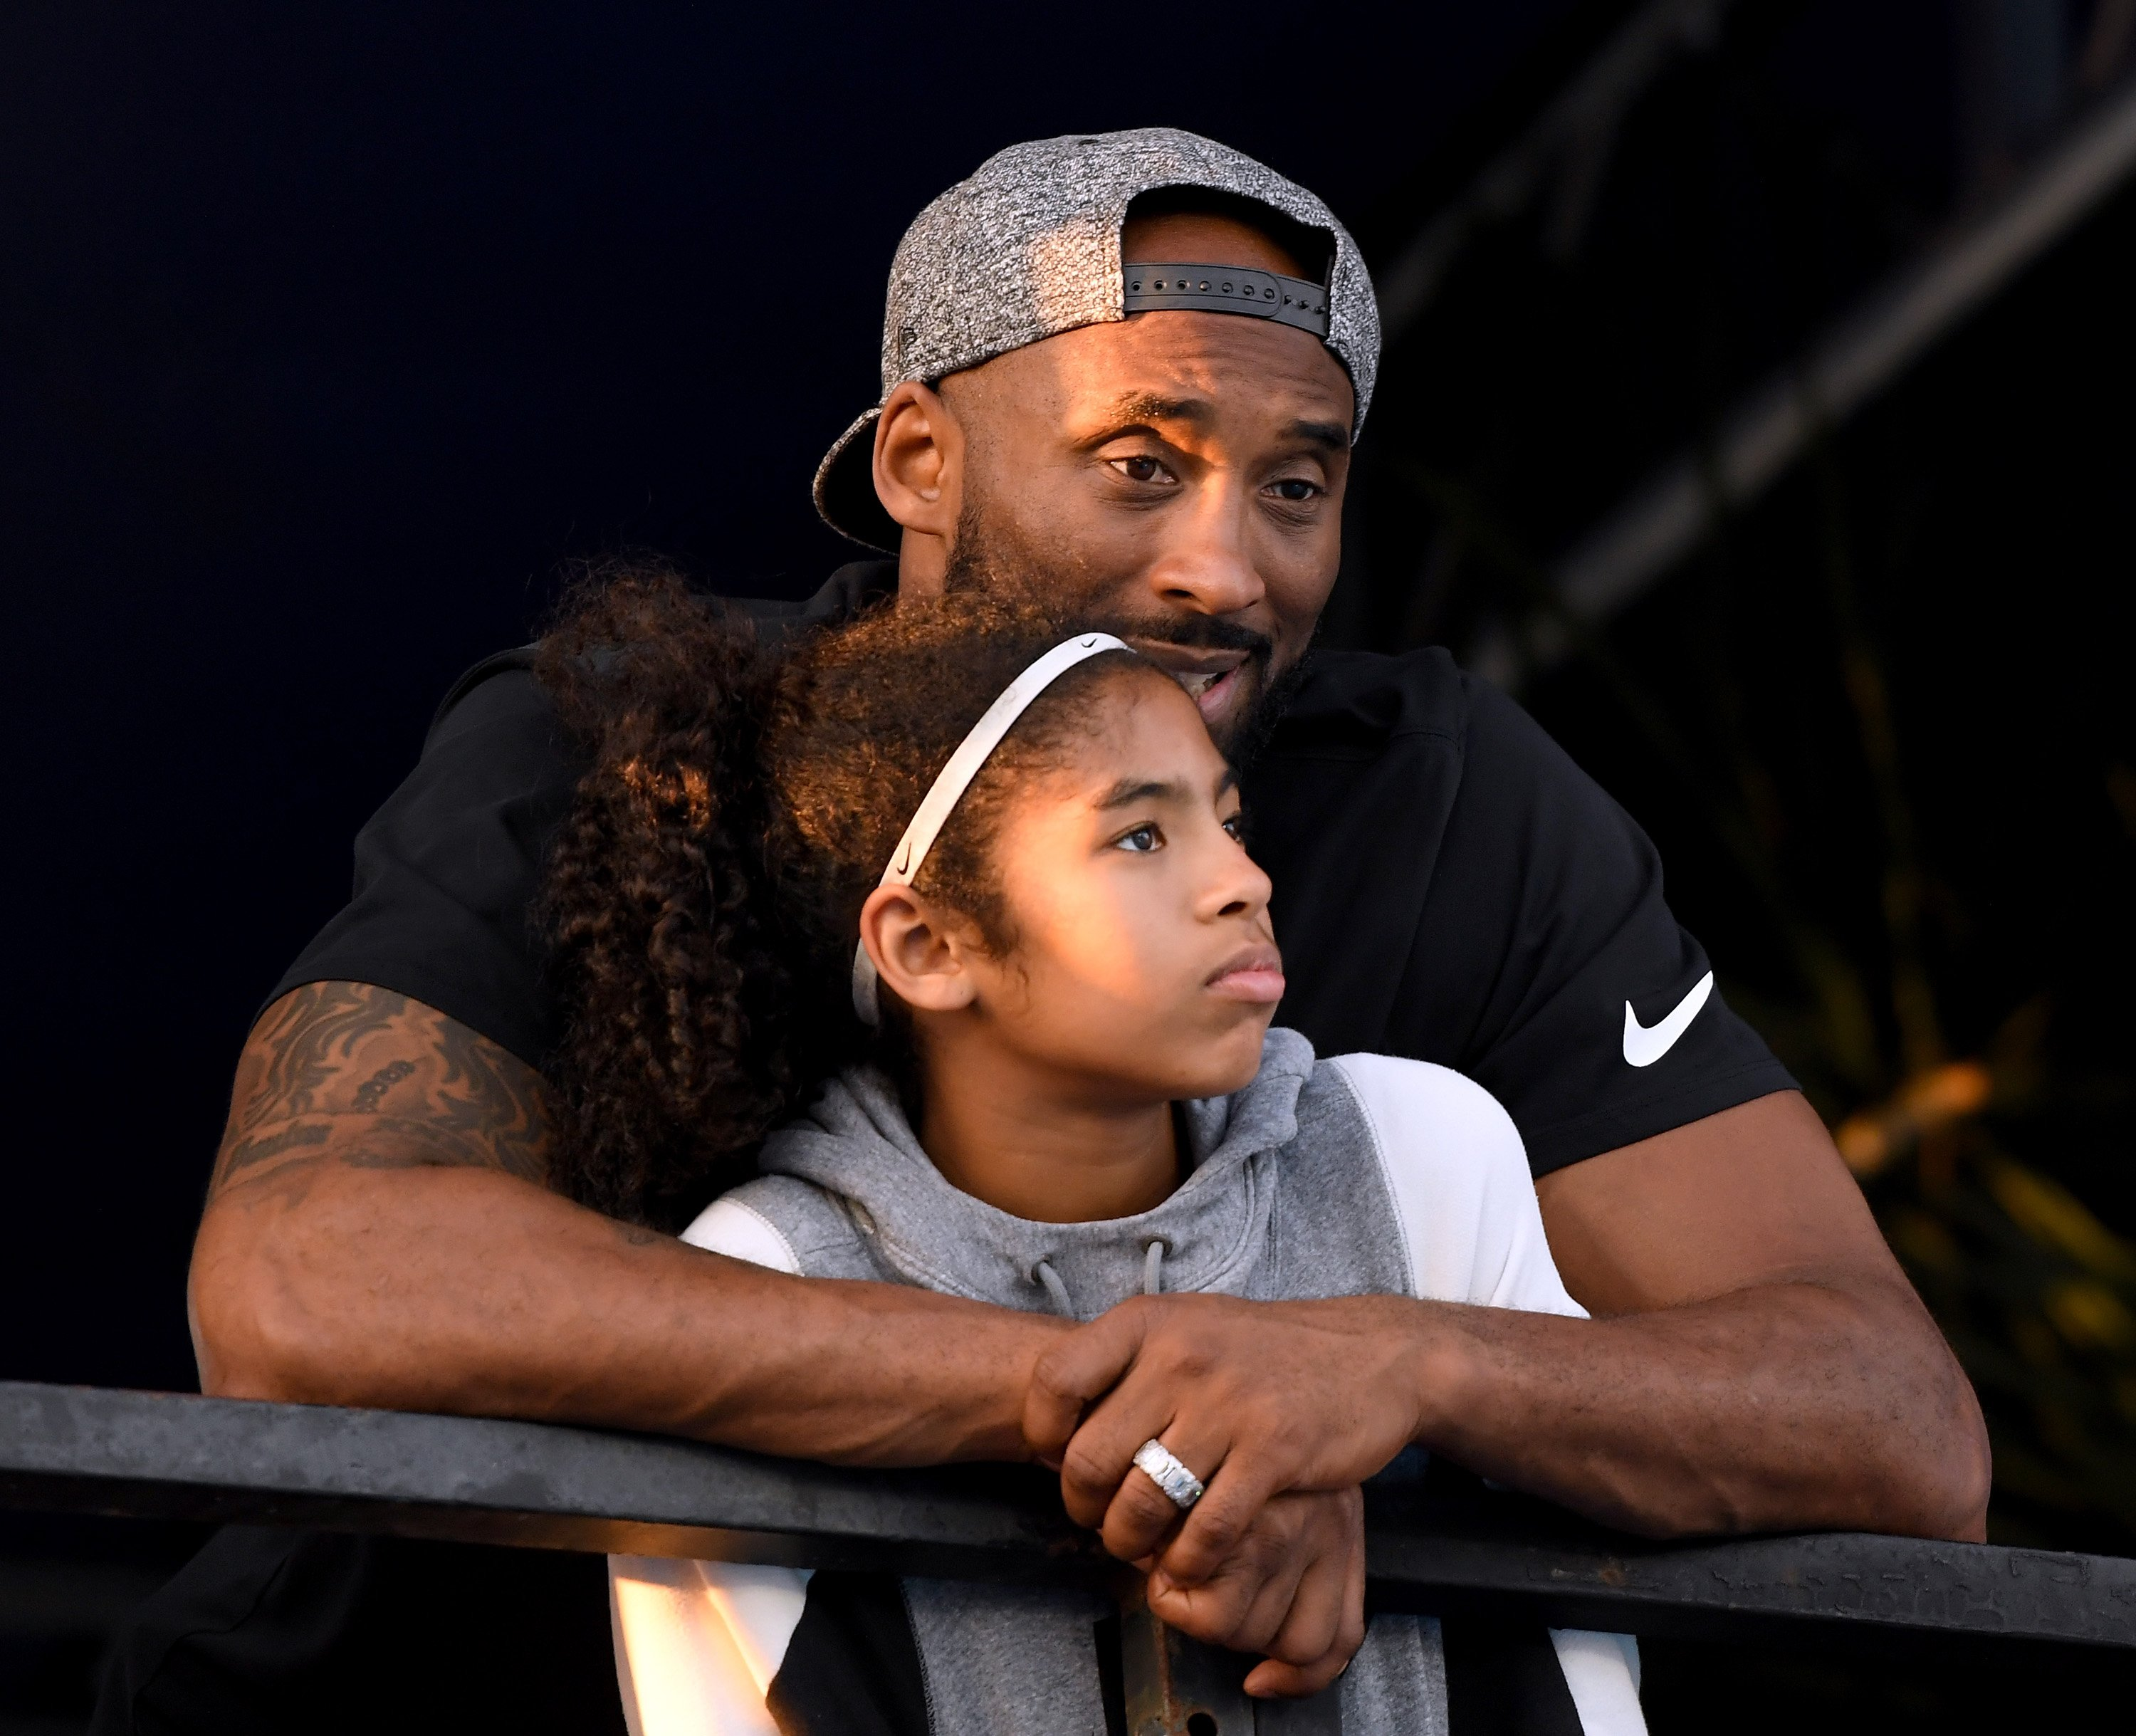 Kobe Bryant and daughter Gianna Bryant watch during day 2 of the Phillips 66 National Swimming Championships. | Photo: GettyImages